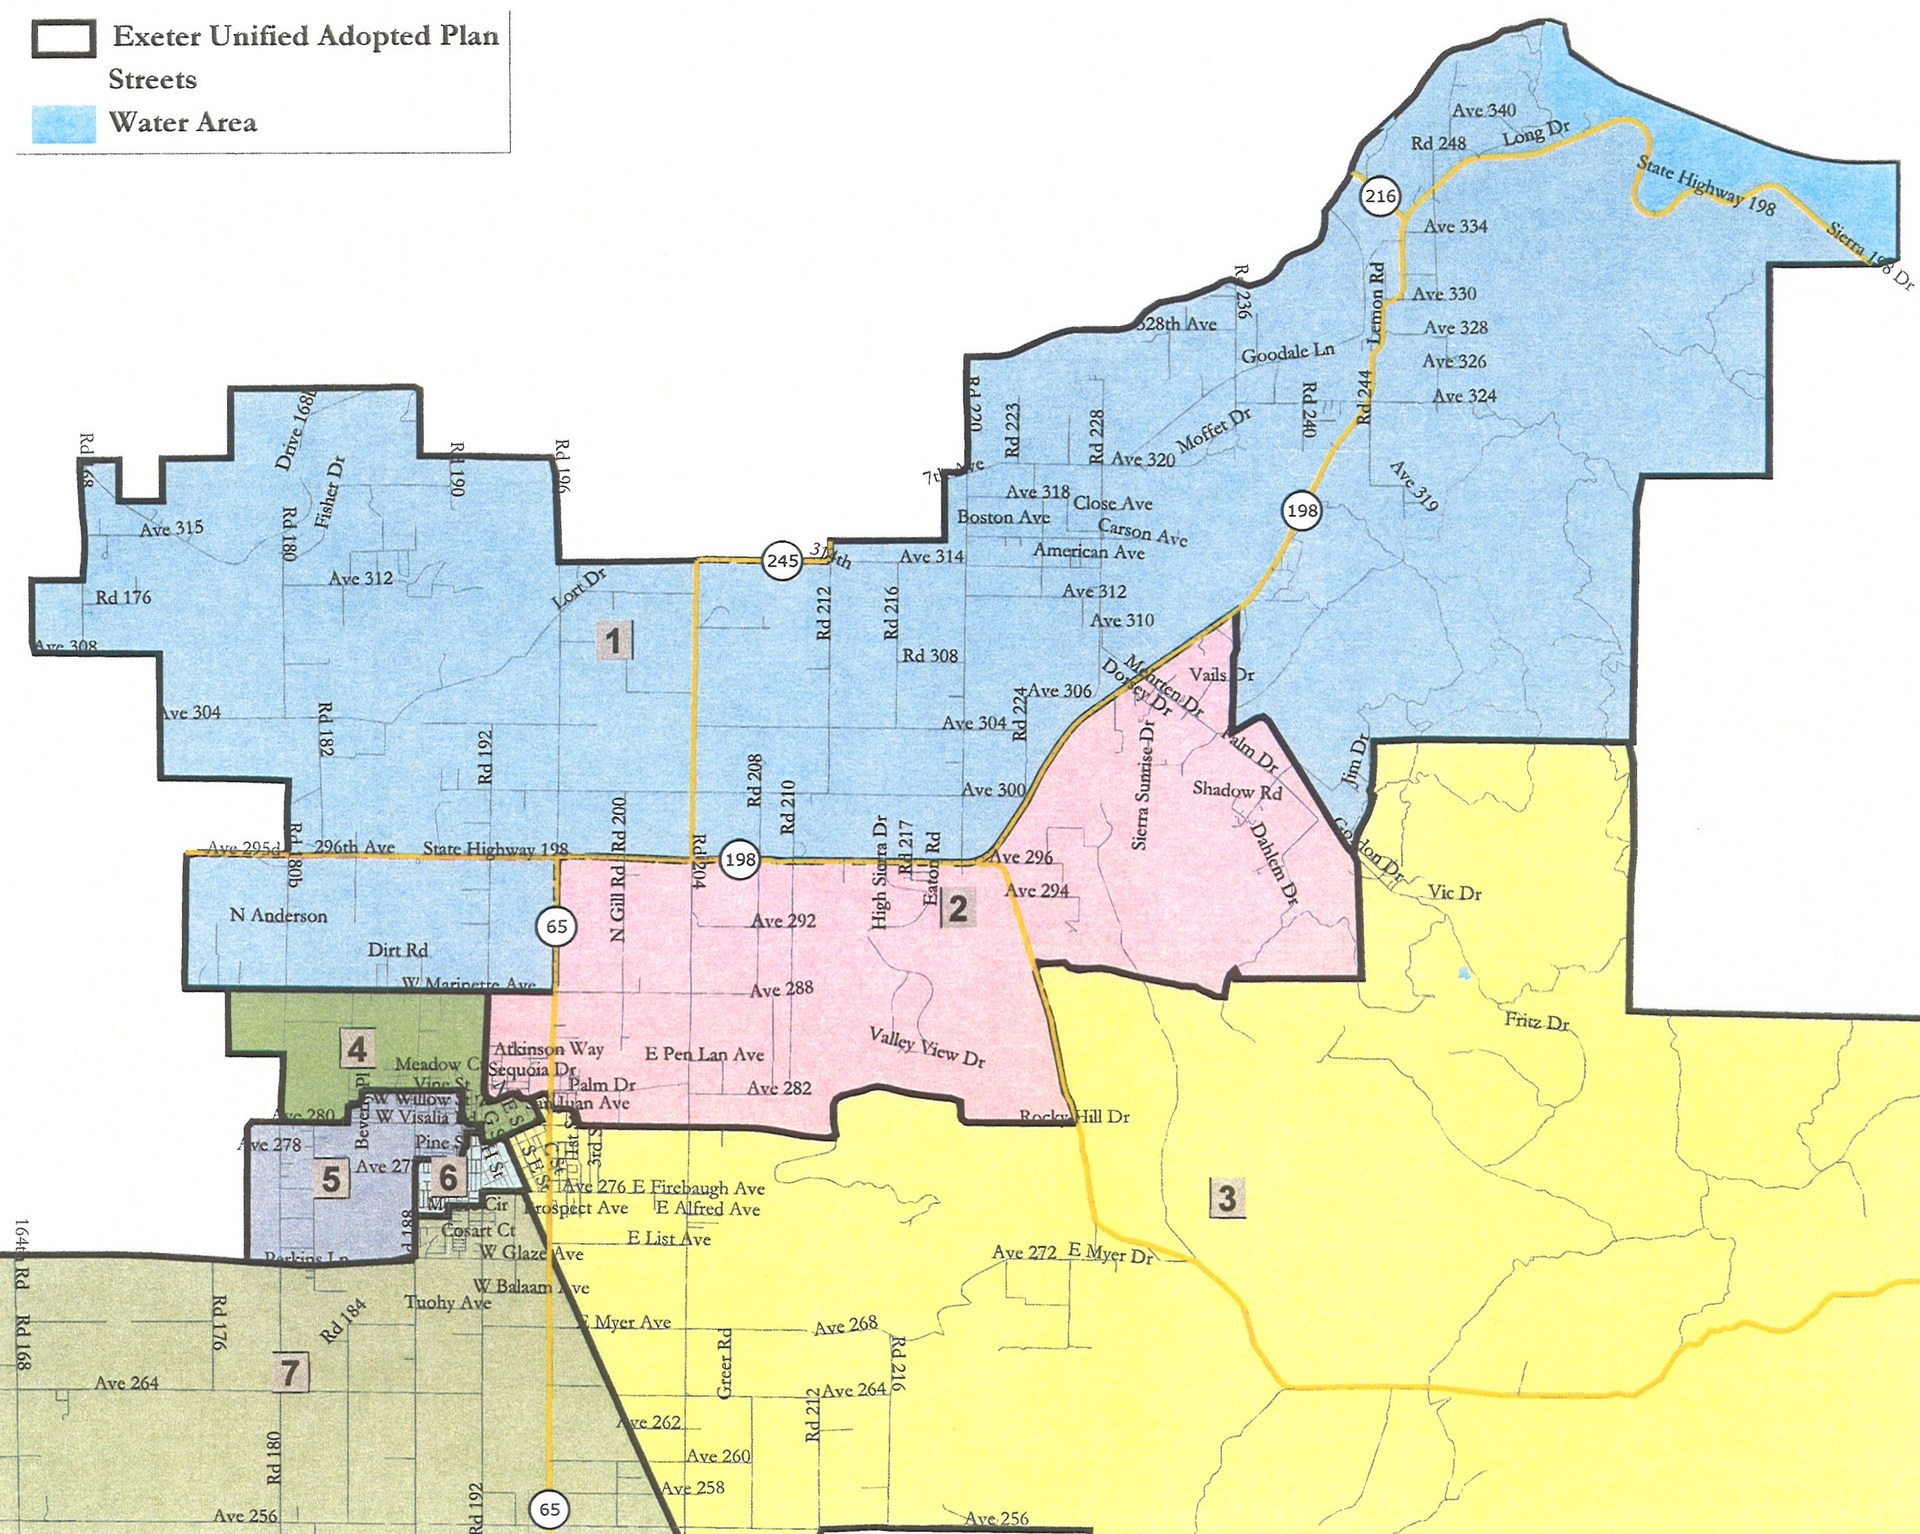 EUSD Executive Board Trustee Areas Map